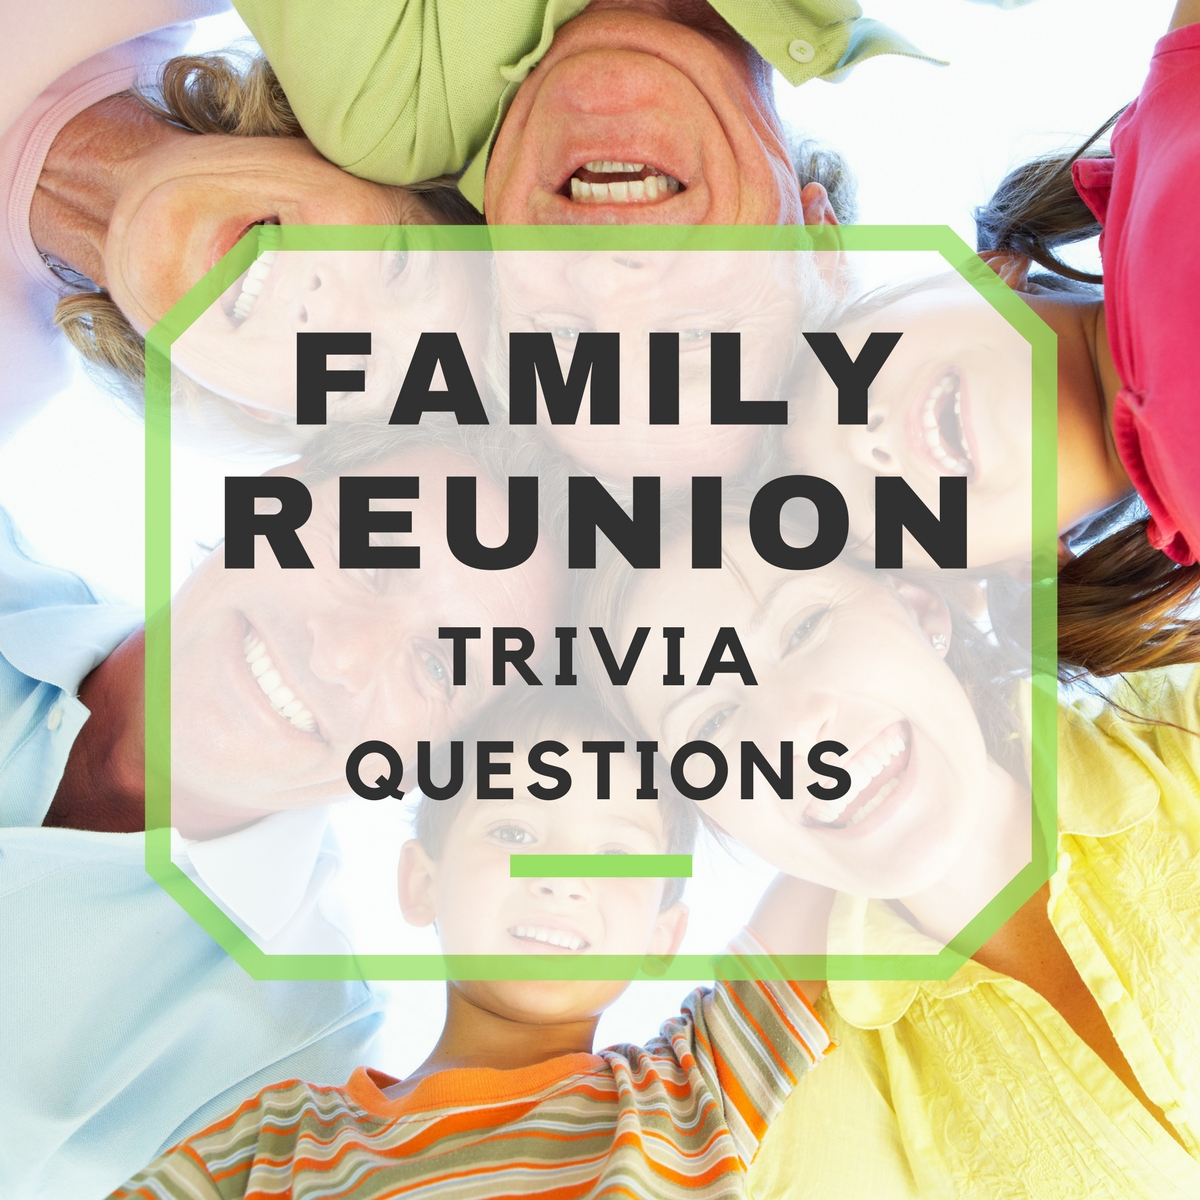 Family Reunion Trivia Questions